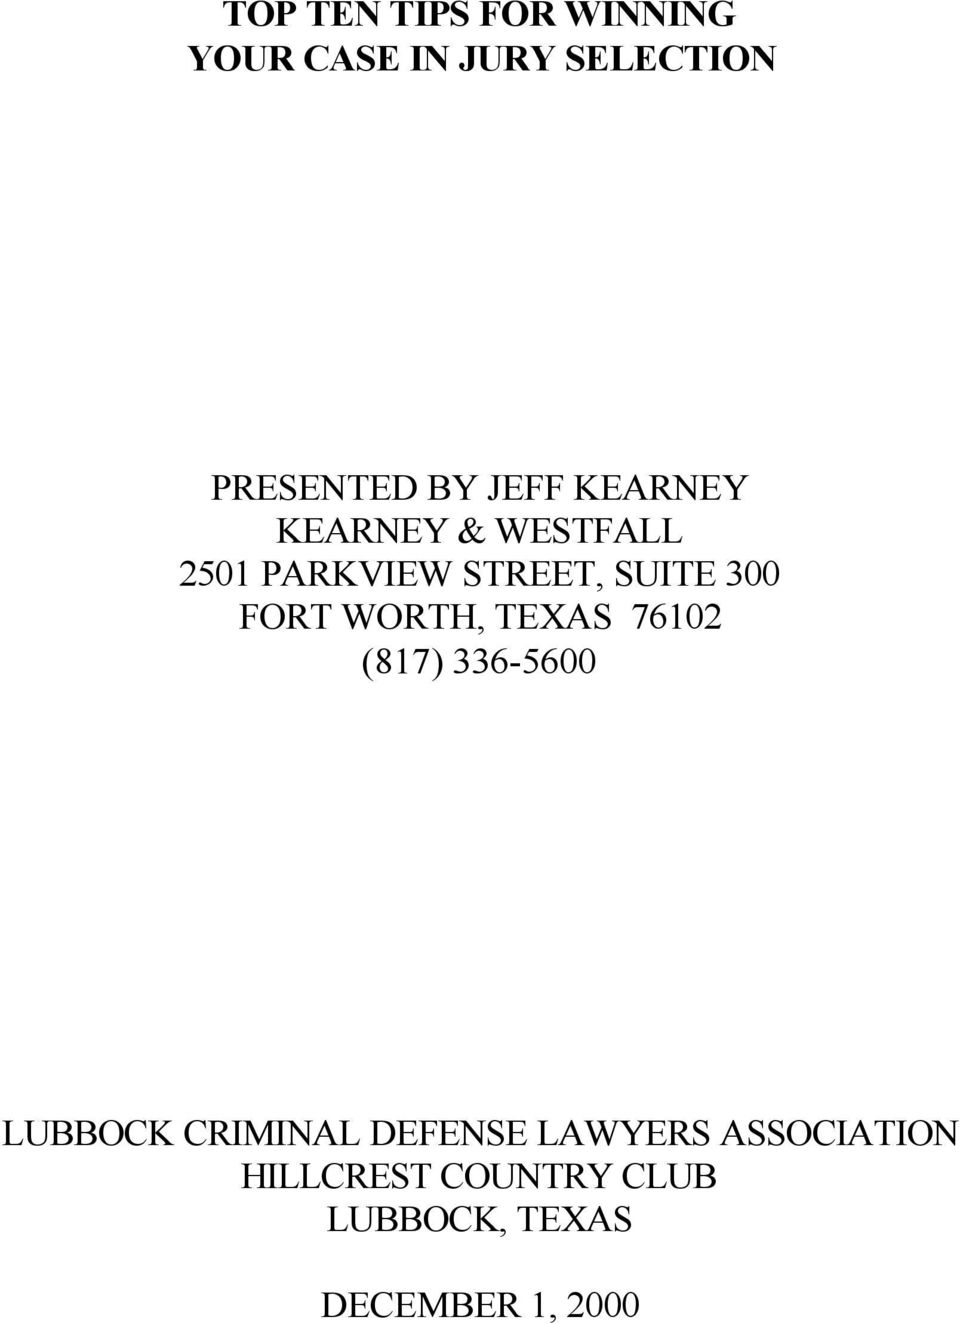 FORT WORTH, TEXAS 76102 (817) 336-5600 LUBBOCK CRIMINAL DEFENSE